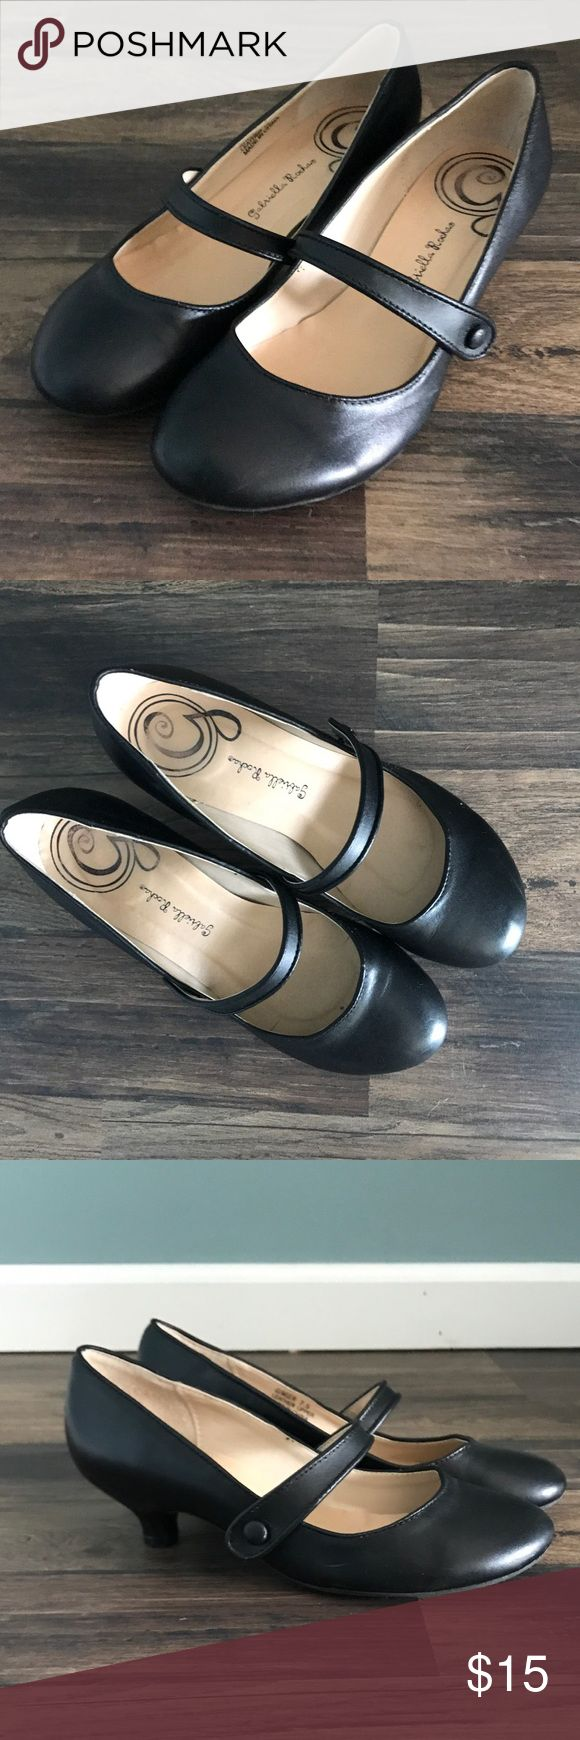 Gabriella Rocha Leather Mary Jane Pumps These are adorable and very comfortable. Size 7.5. Perfect for work. Worn once. They are in nearly perfect condition. $15 OBO Gabriella Rocha Shoes